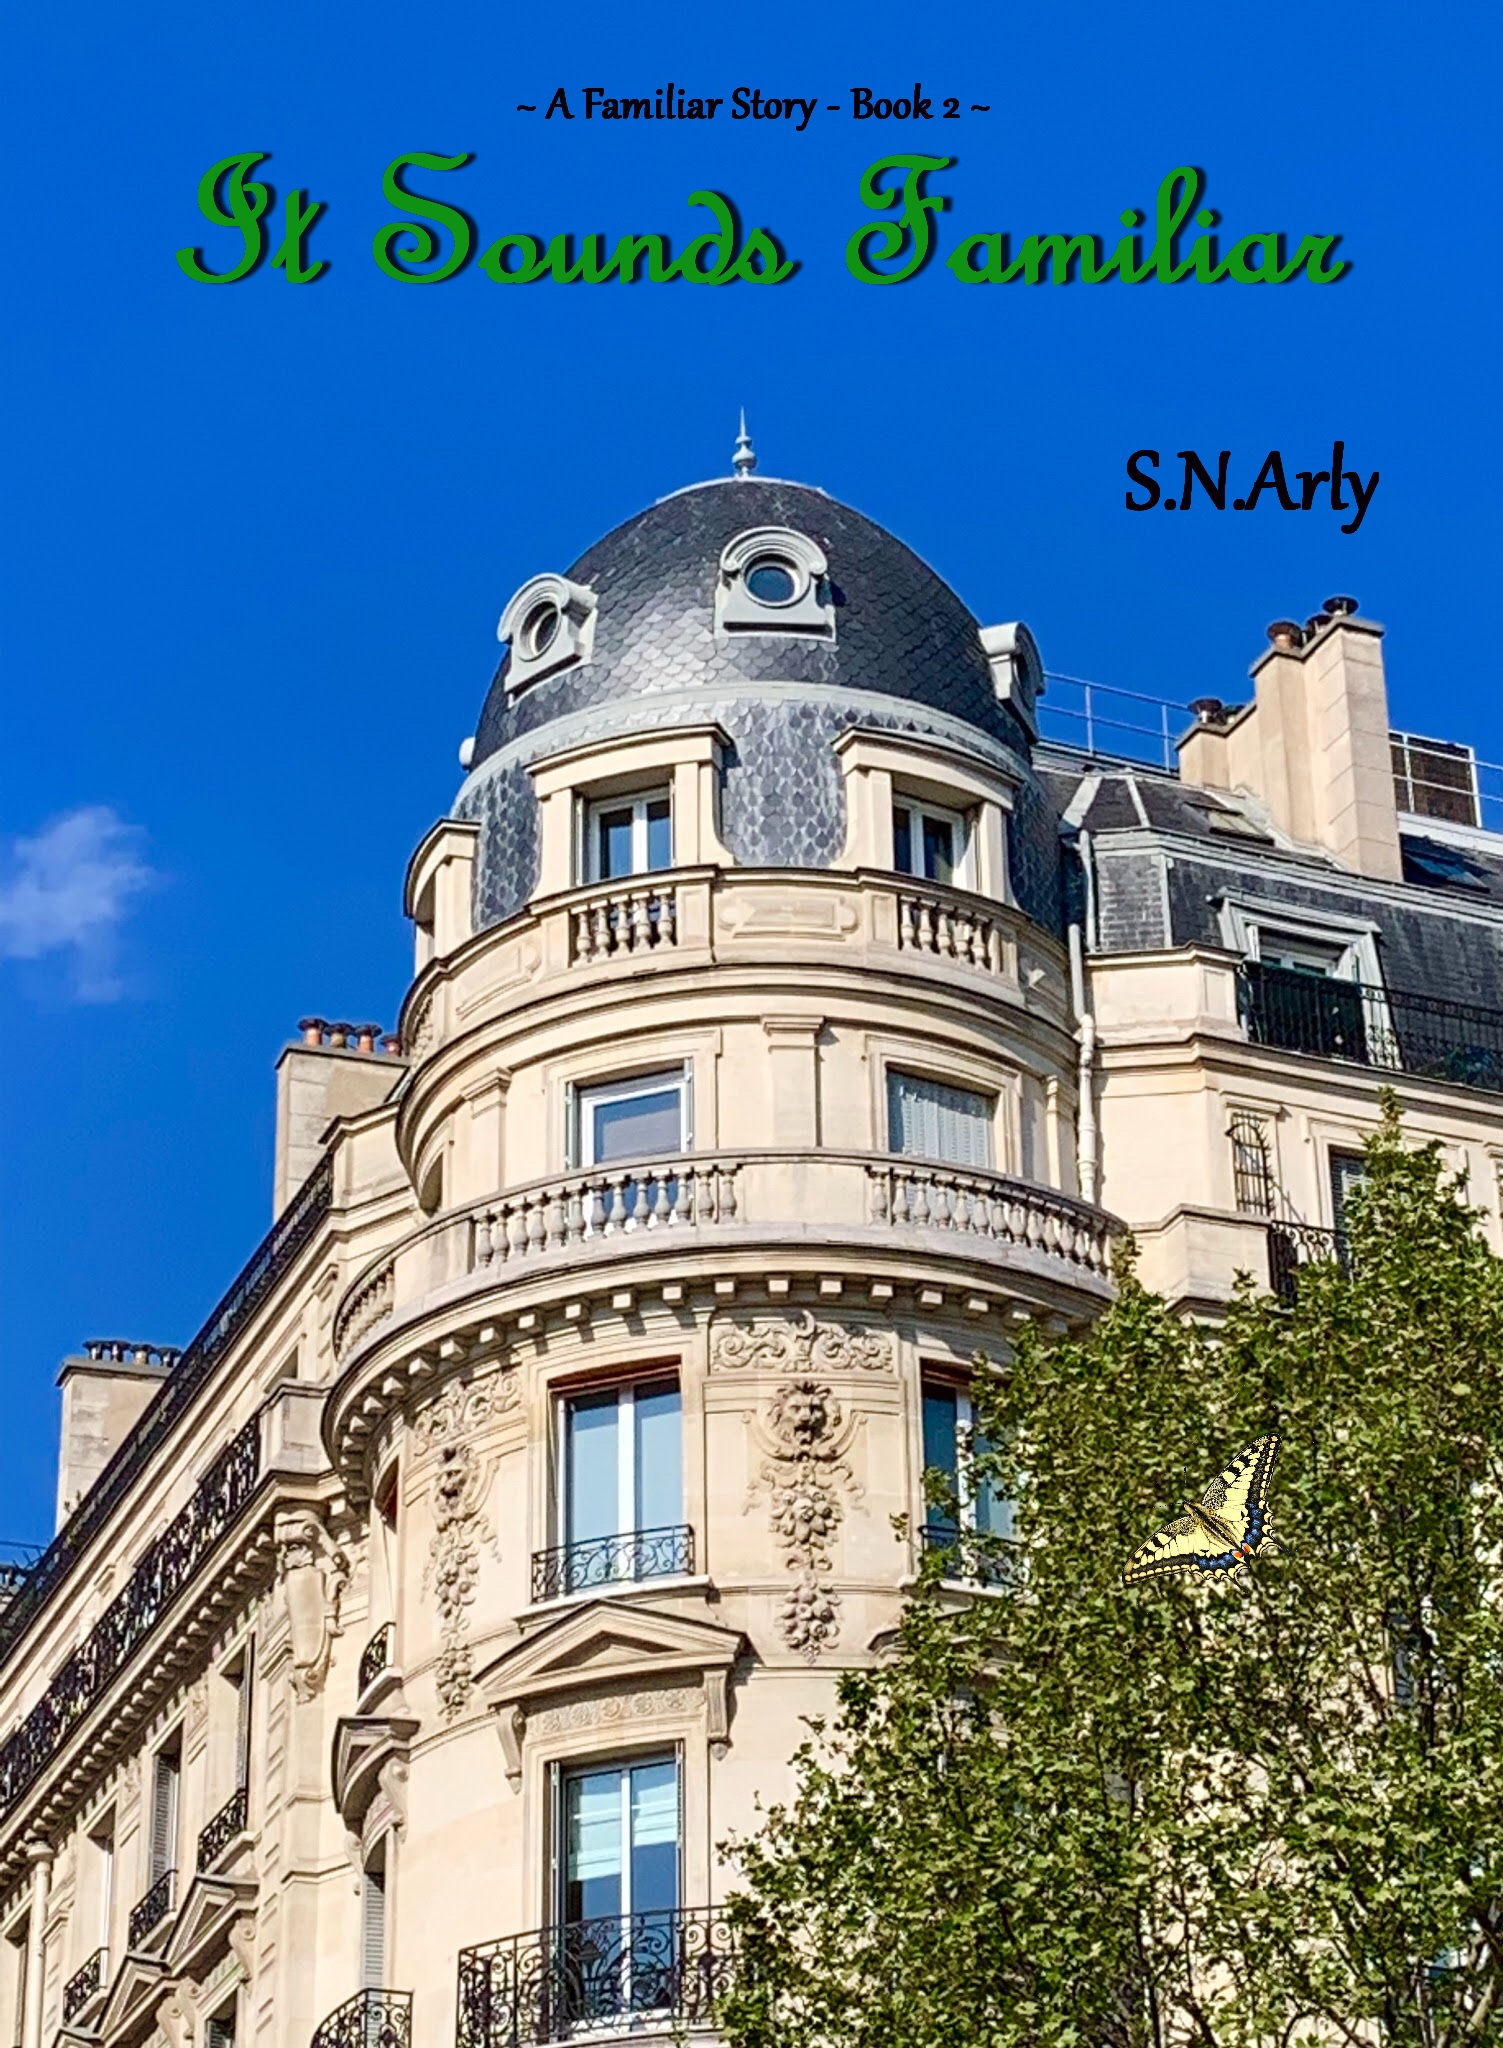 Cover of the book It Sounds Familiar, featuring a blue sky and a classical French building.